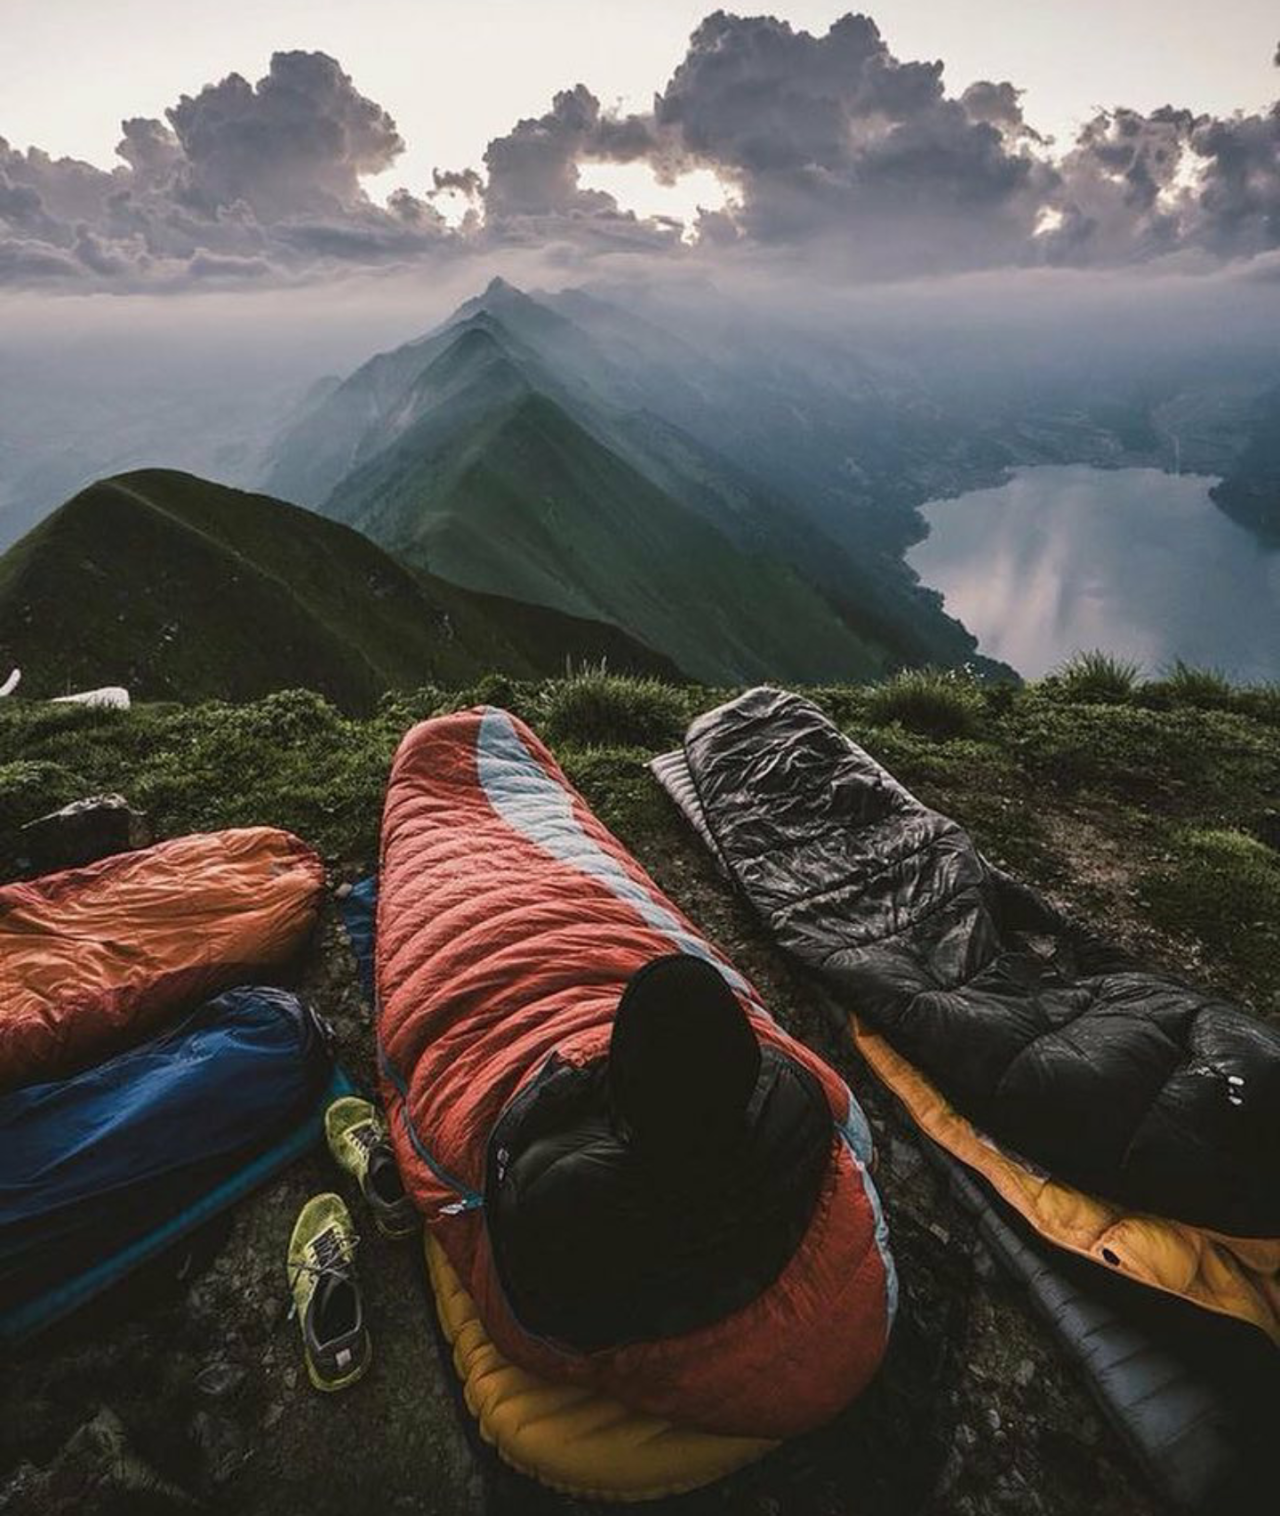 Camping mountains sunrise , amazing view, travel nature